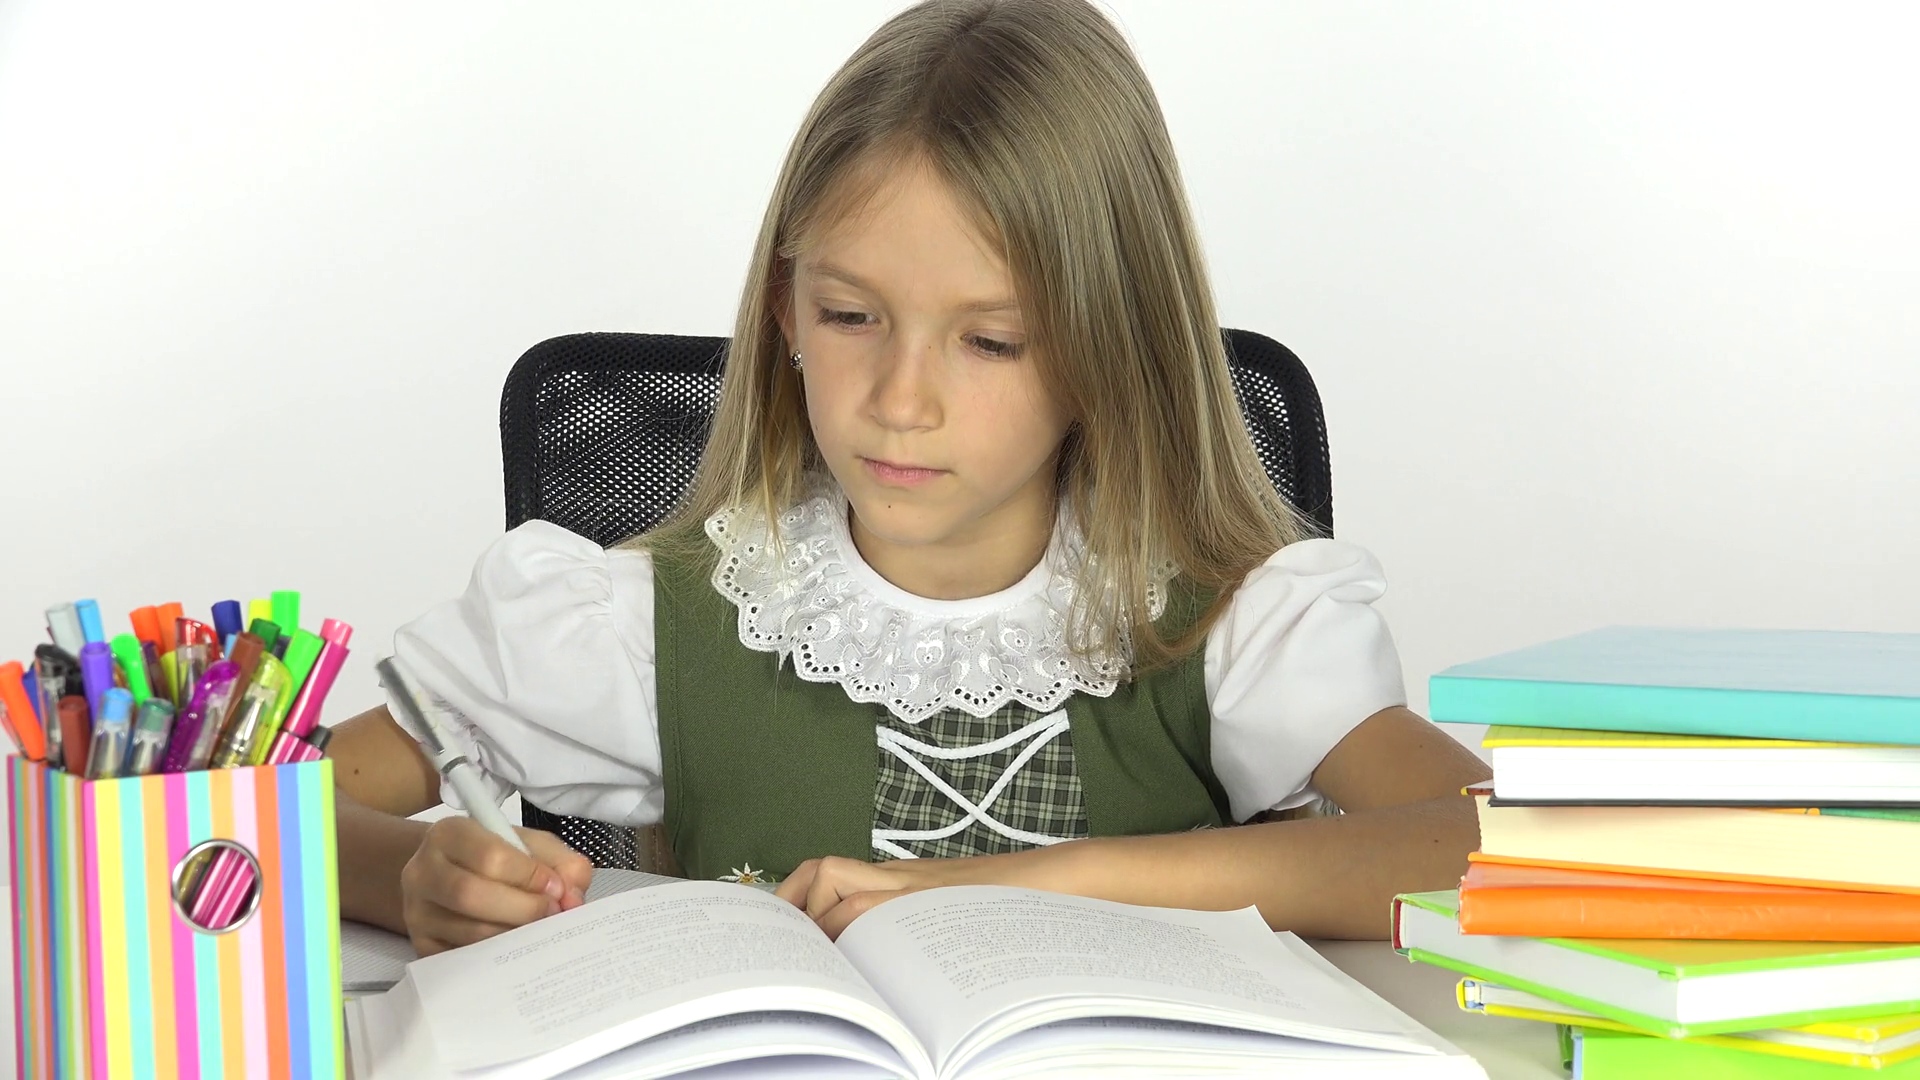 PNG HD Student Reading - 147278